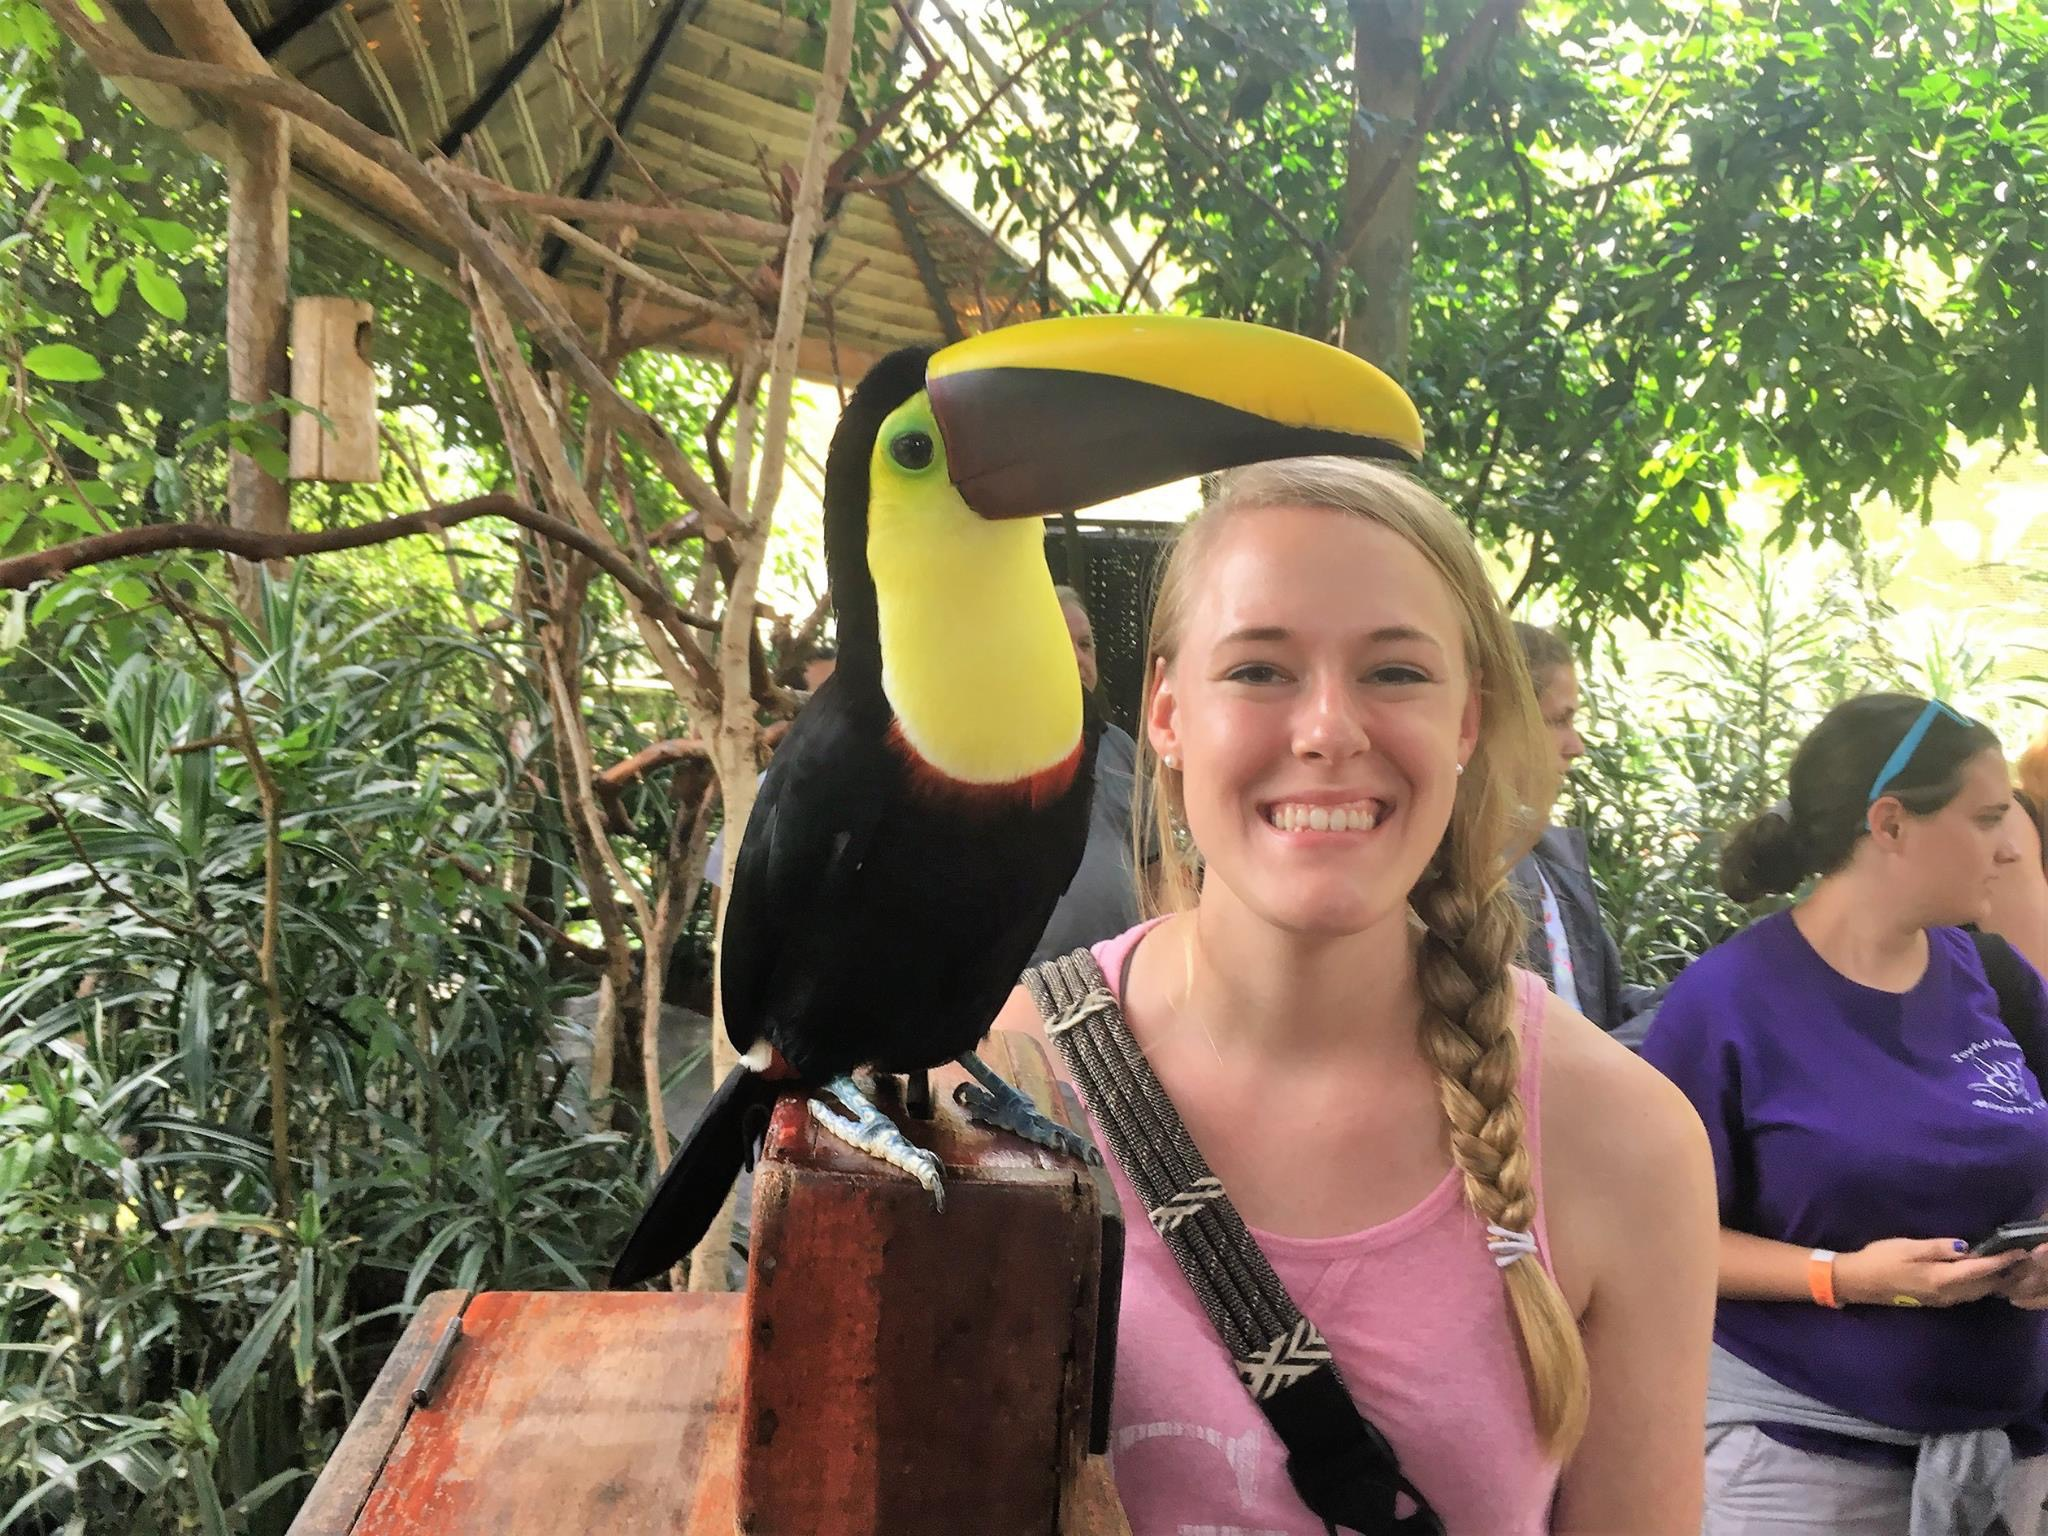 This photo was taken at La Paz Waterfall Gardens in Costa Rica. While studying abroad for one month with GWU peers, we had the opportunity to explore various zoos and go on excursions in the evening. I had the opportunity to get up close and personal with one of my favorite birds- the toucan!